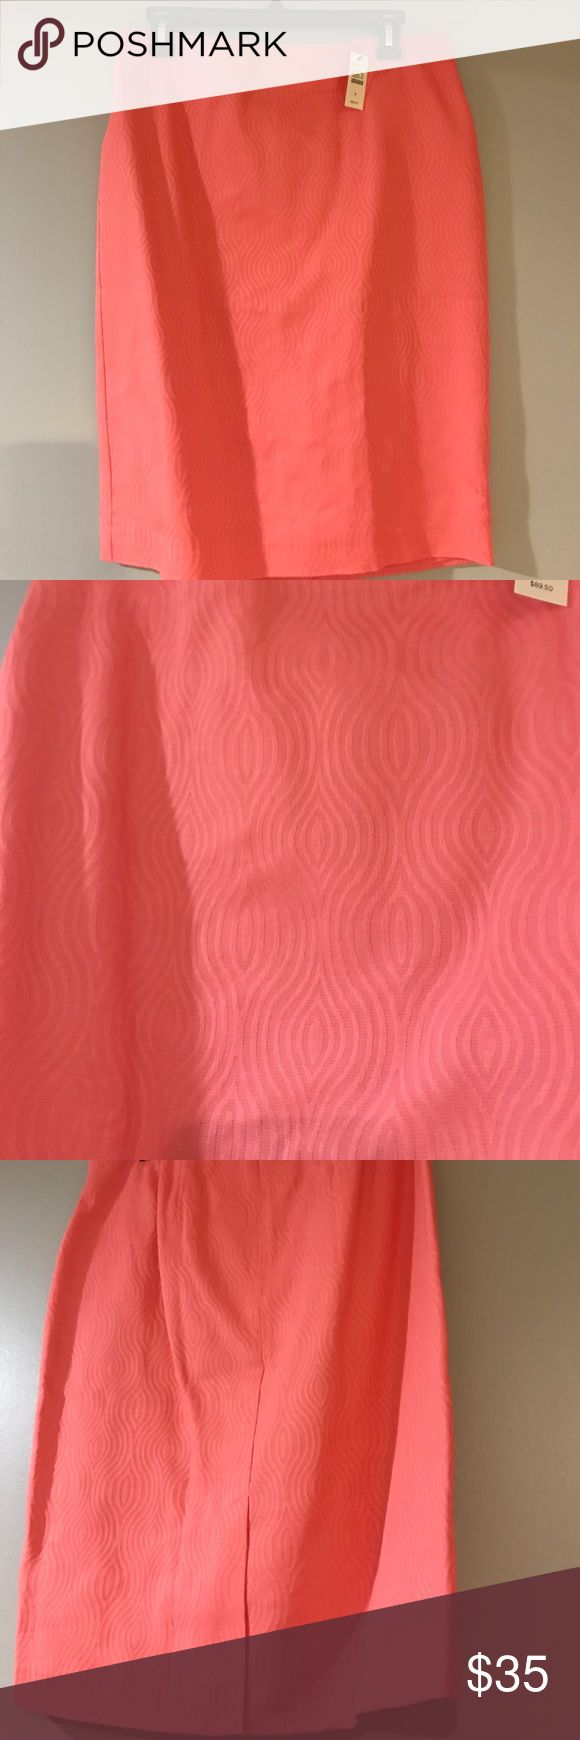 Coral Pencil Skirt Almost pastel. Brand new with Tags. Lined. Cotton. Talbots Skirts Pencil